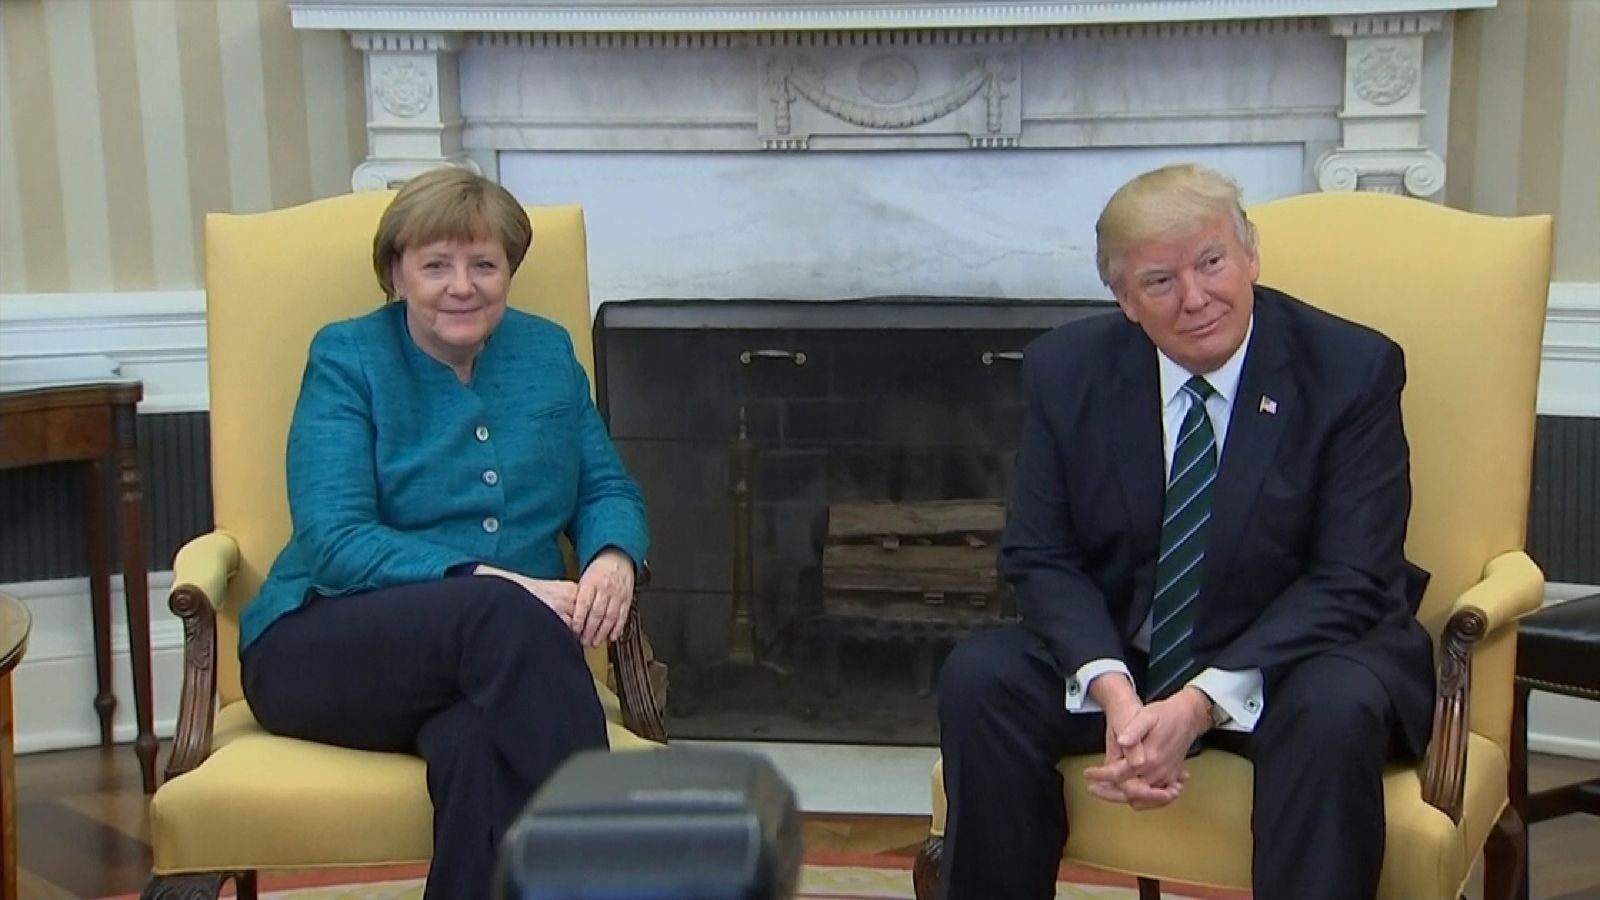 Angela Merkel and Donald Trump at the White House